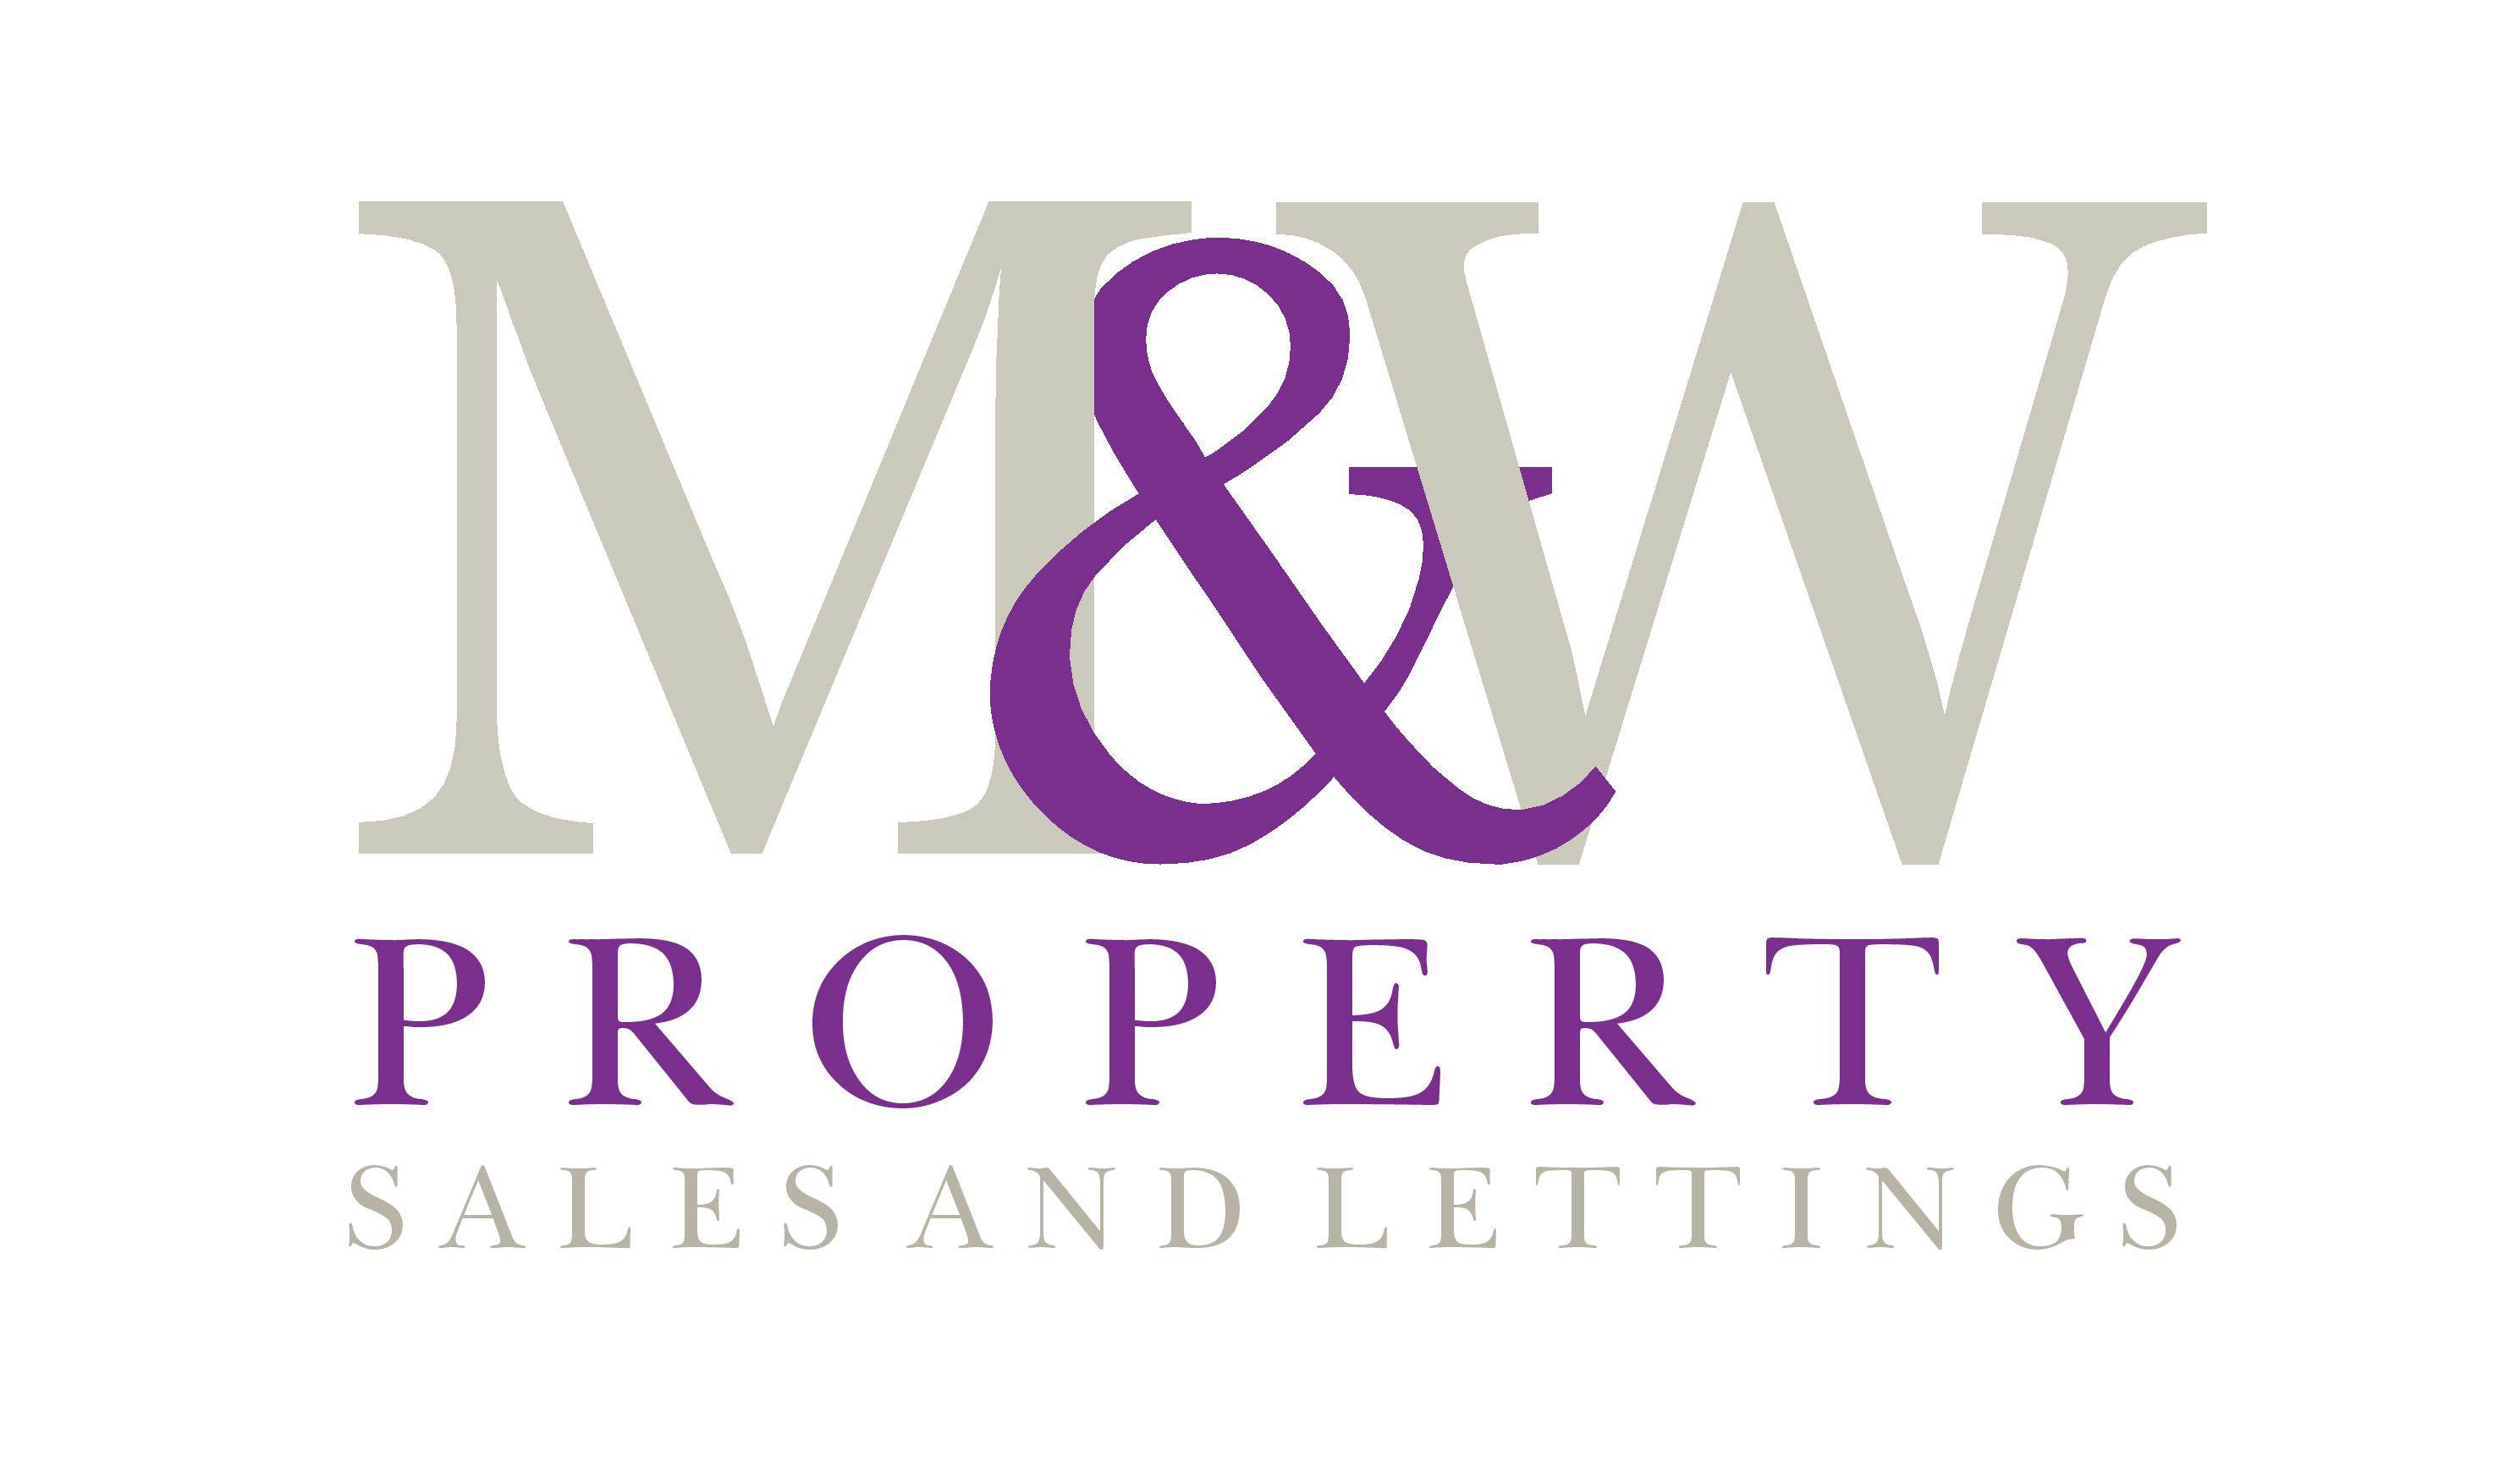 M&W Property Sales and Lettings